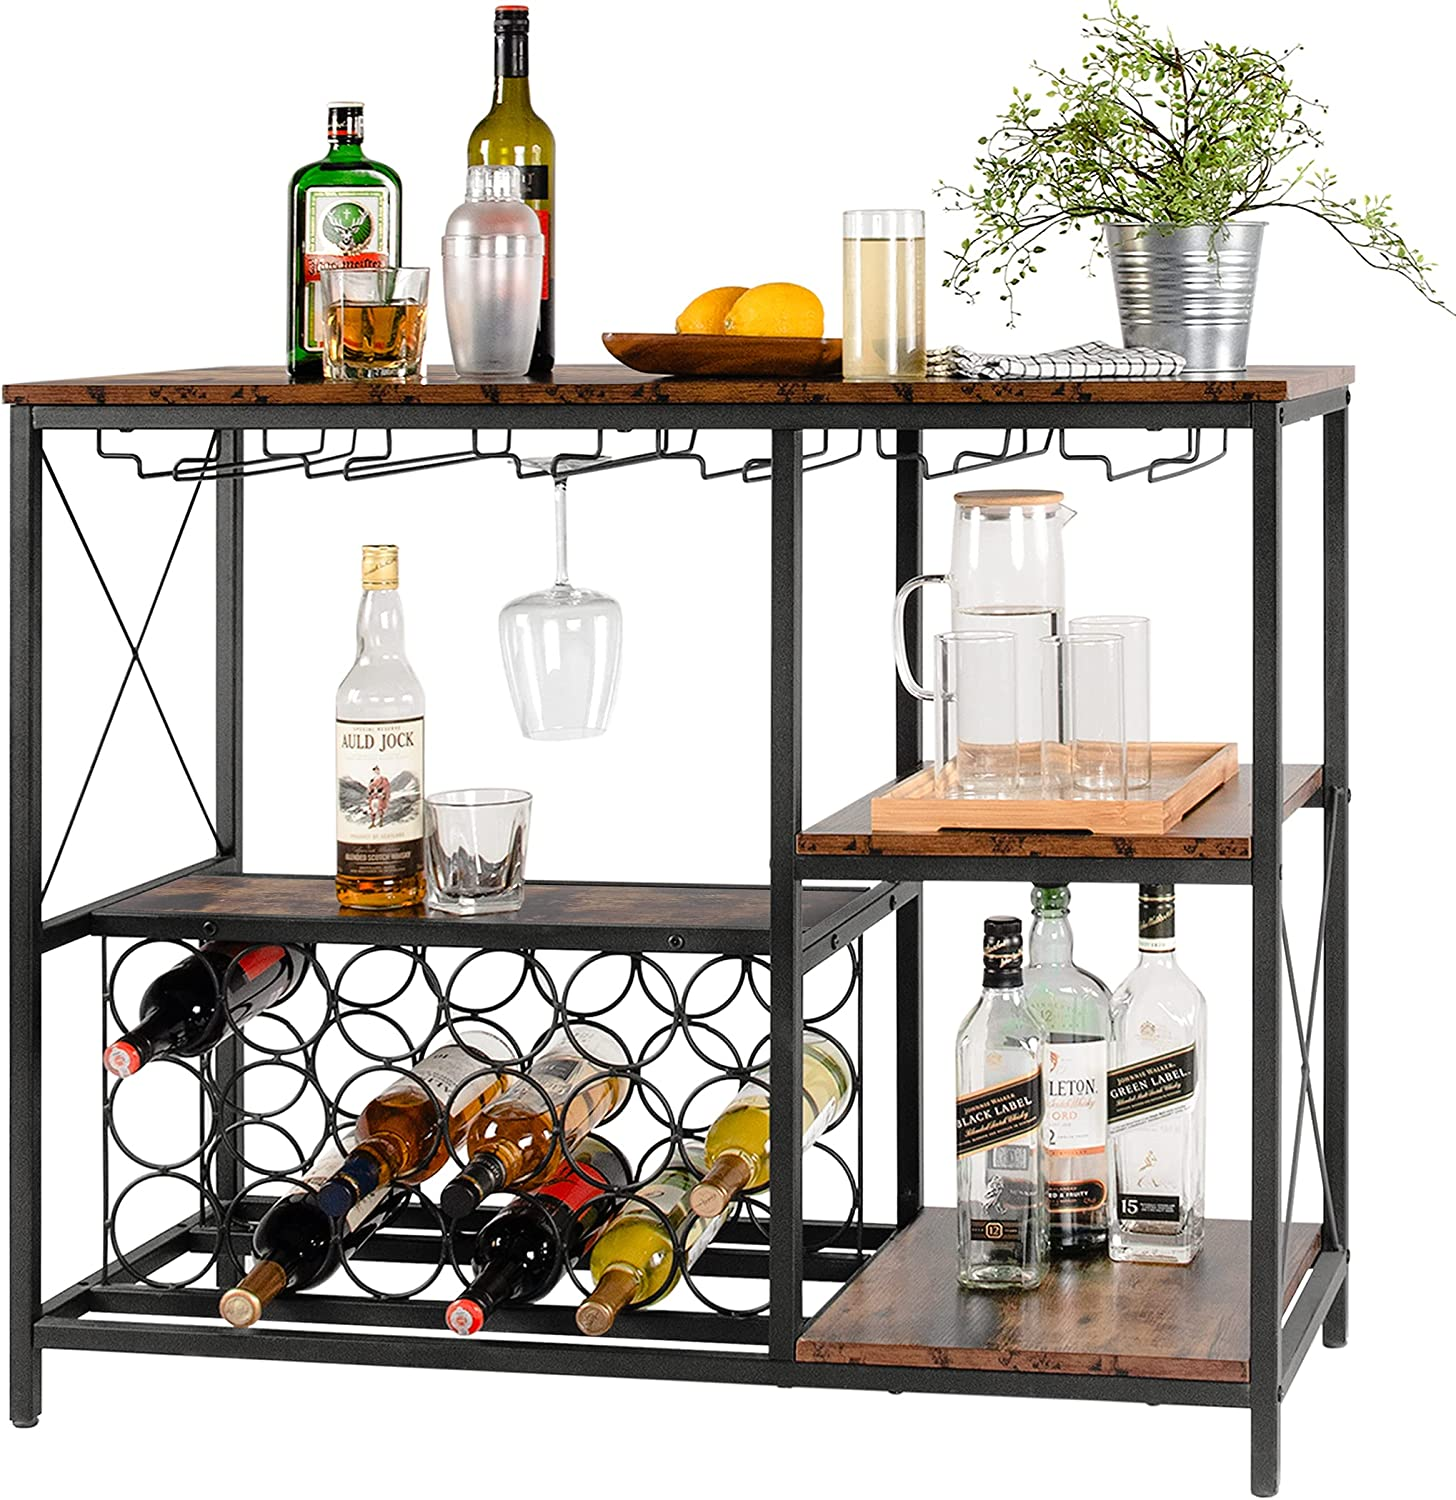 Tektalk Wine Bar Cabinet Max 54% OFF Rack 1 year warranty Freestanding with Table Glass